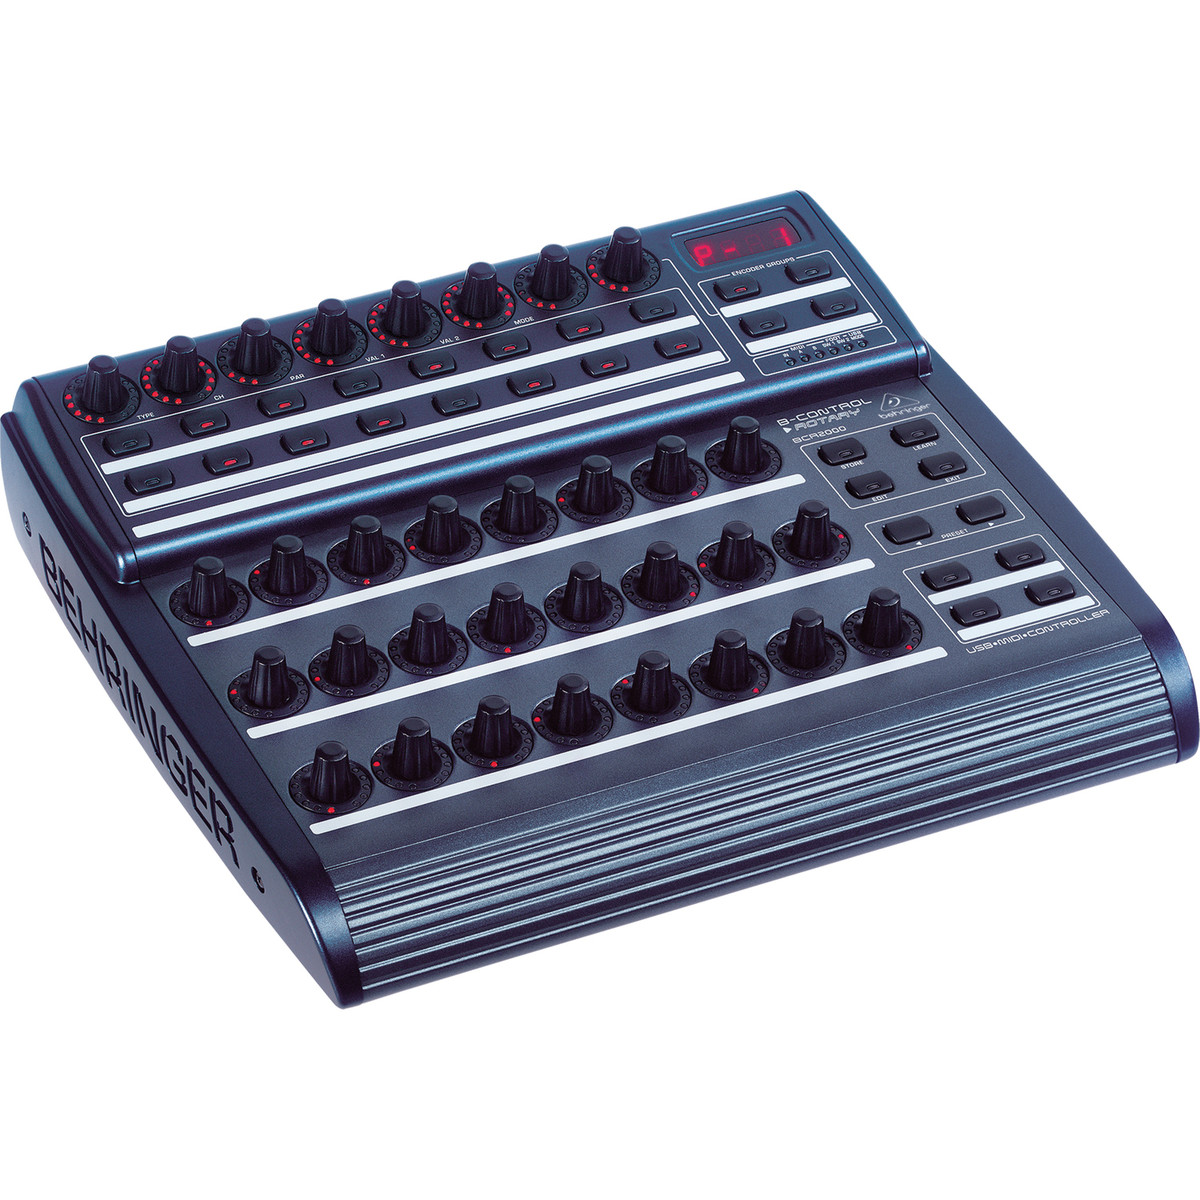 behringer bcr2000 b control rotary midi control surface b stock at gear4music. Black Bedroom Furniture Sets. Home Design Ideas